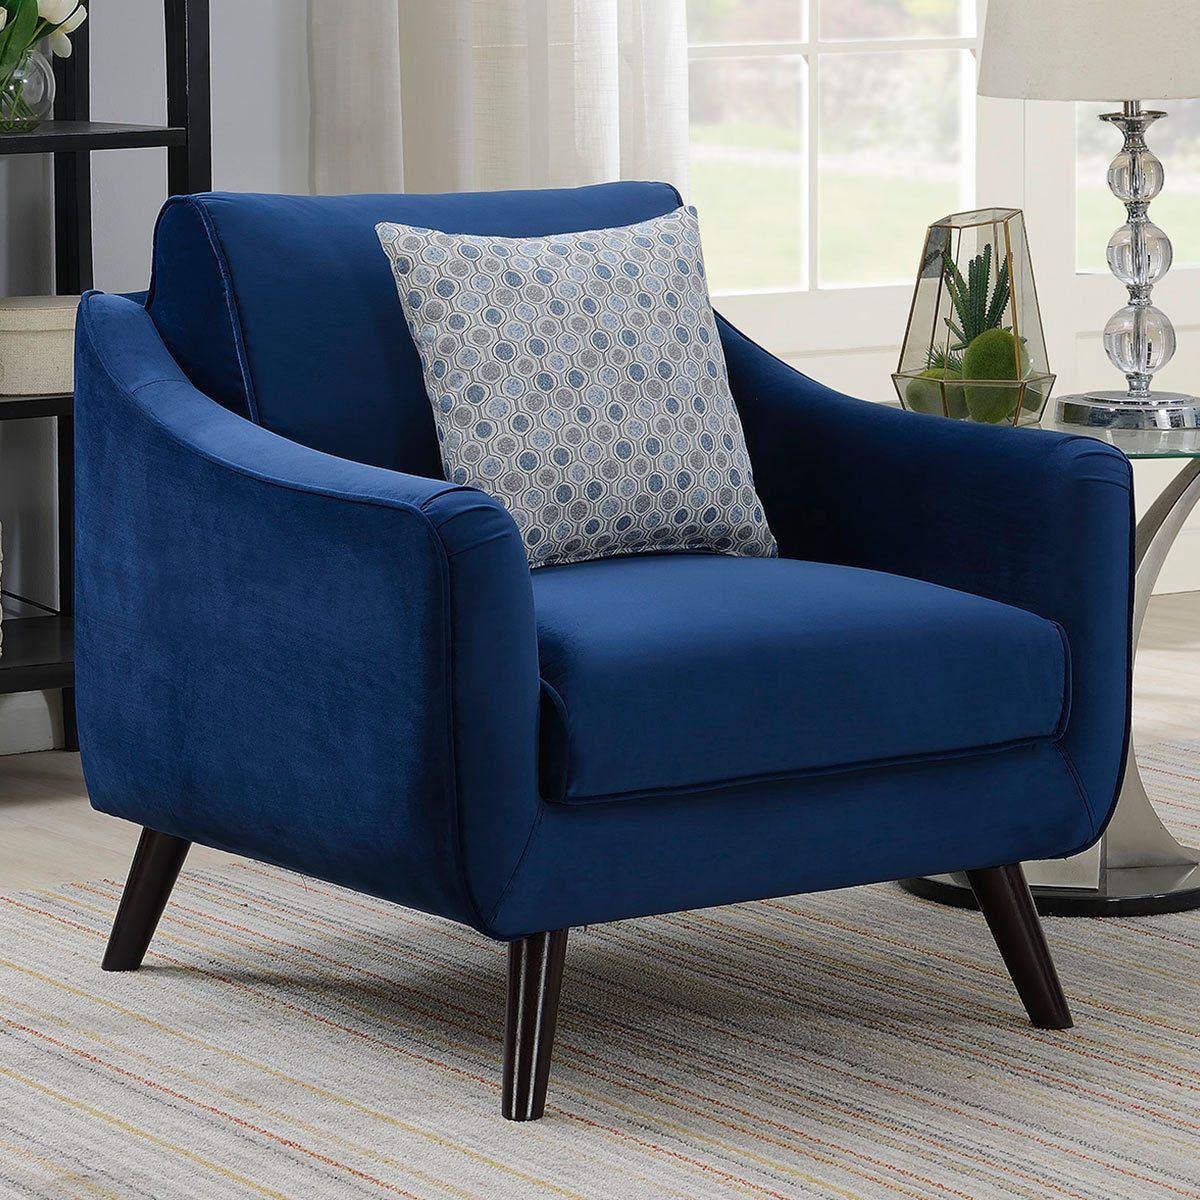 Bainbridge Blue Velvet Armchair Blue Accent Chairs Accent